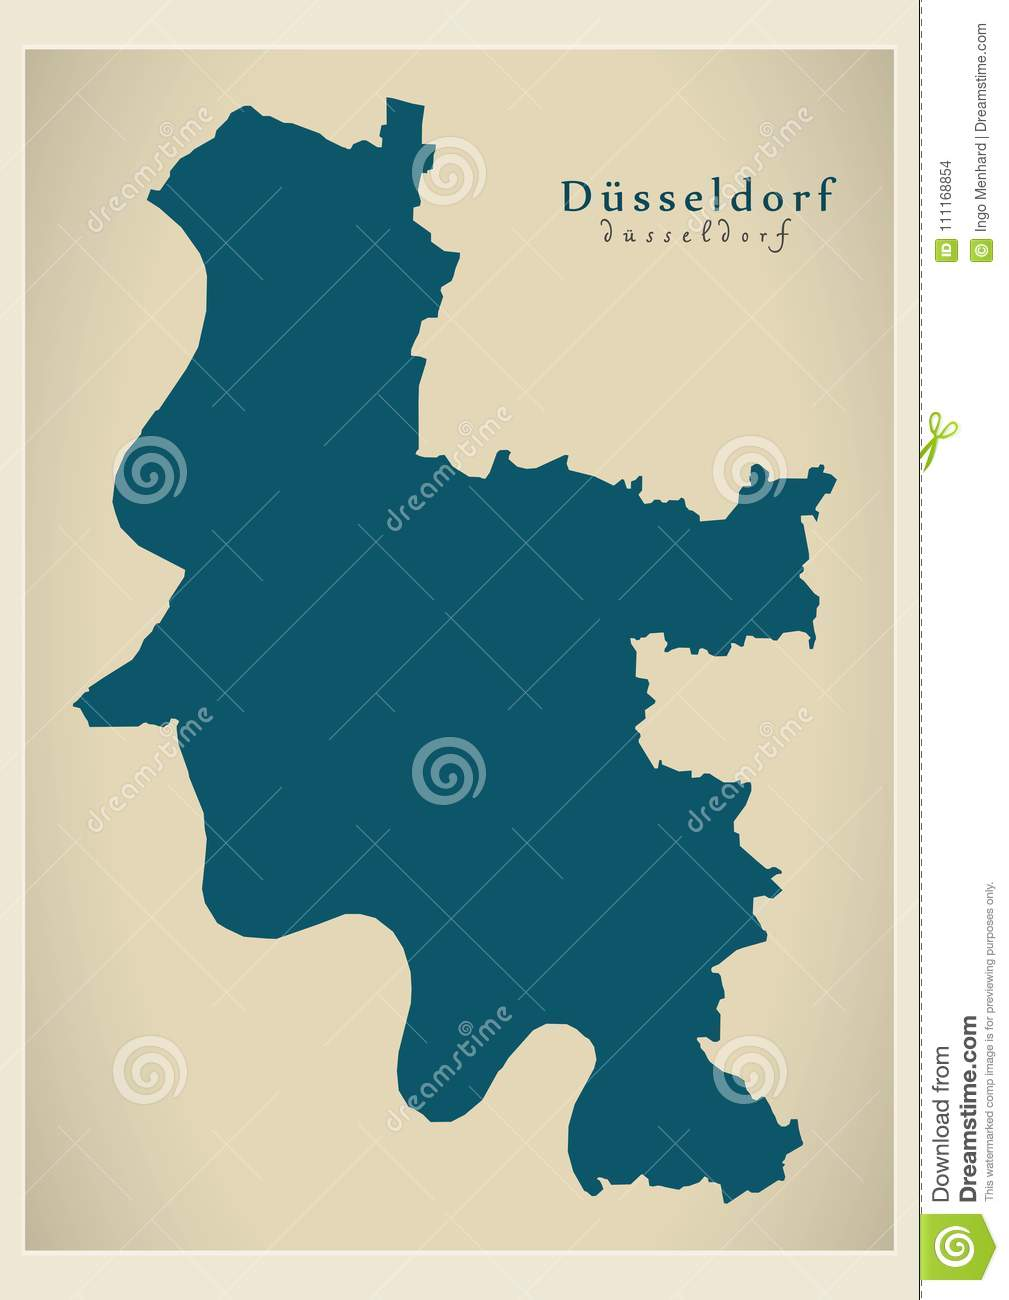 Map Of Germany Showing Dusseldorf.Modern Map Dusseldorf City Of Germany De Stock Vector